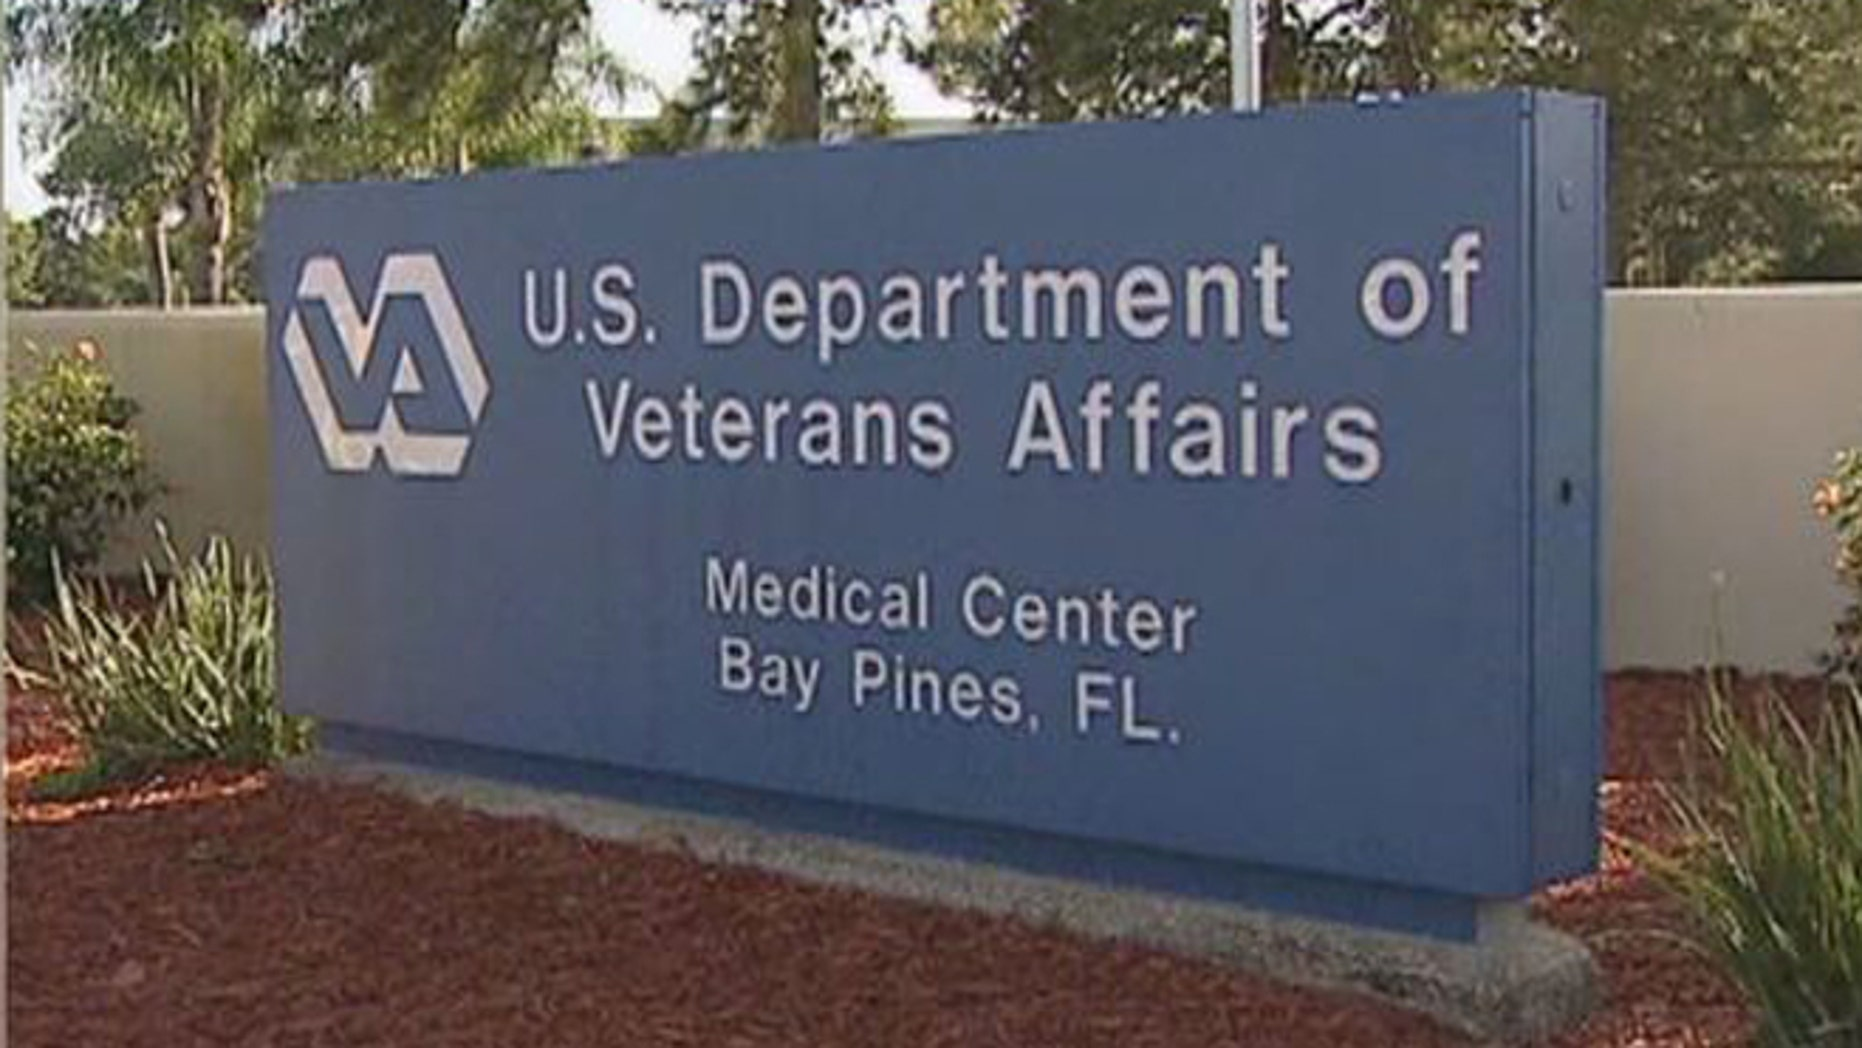 Bay Pines VA hospital in Bay Pines, Florida. (Fox 13 Tampa)